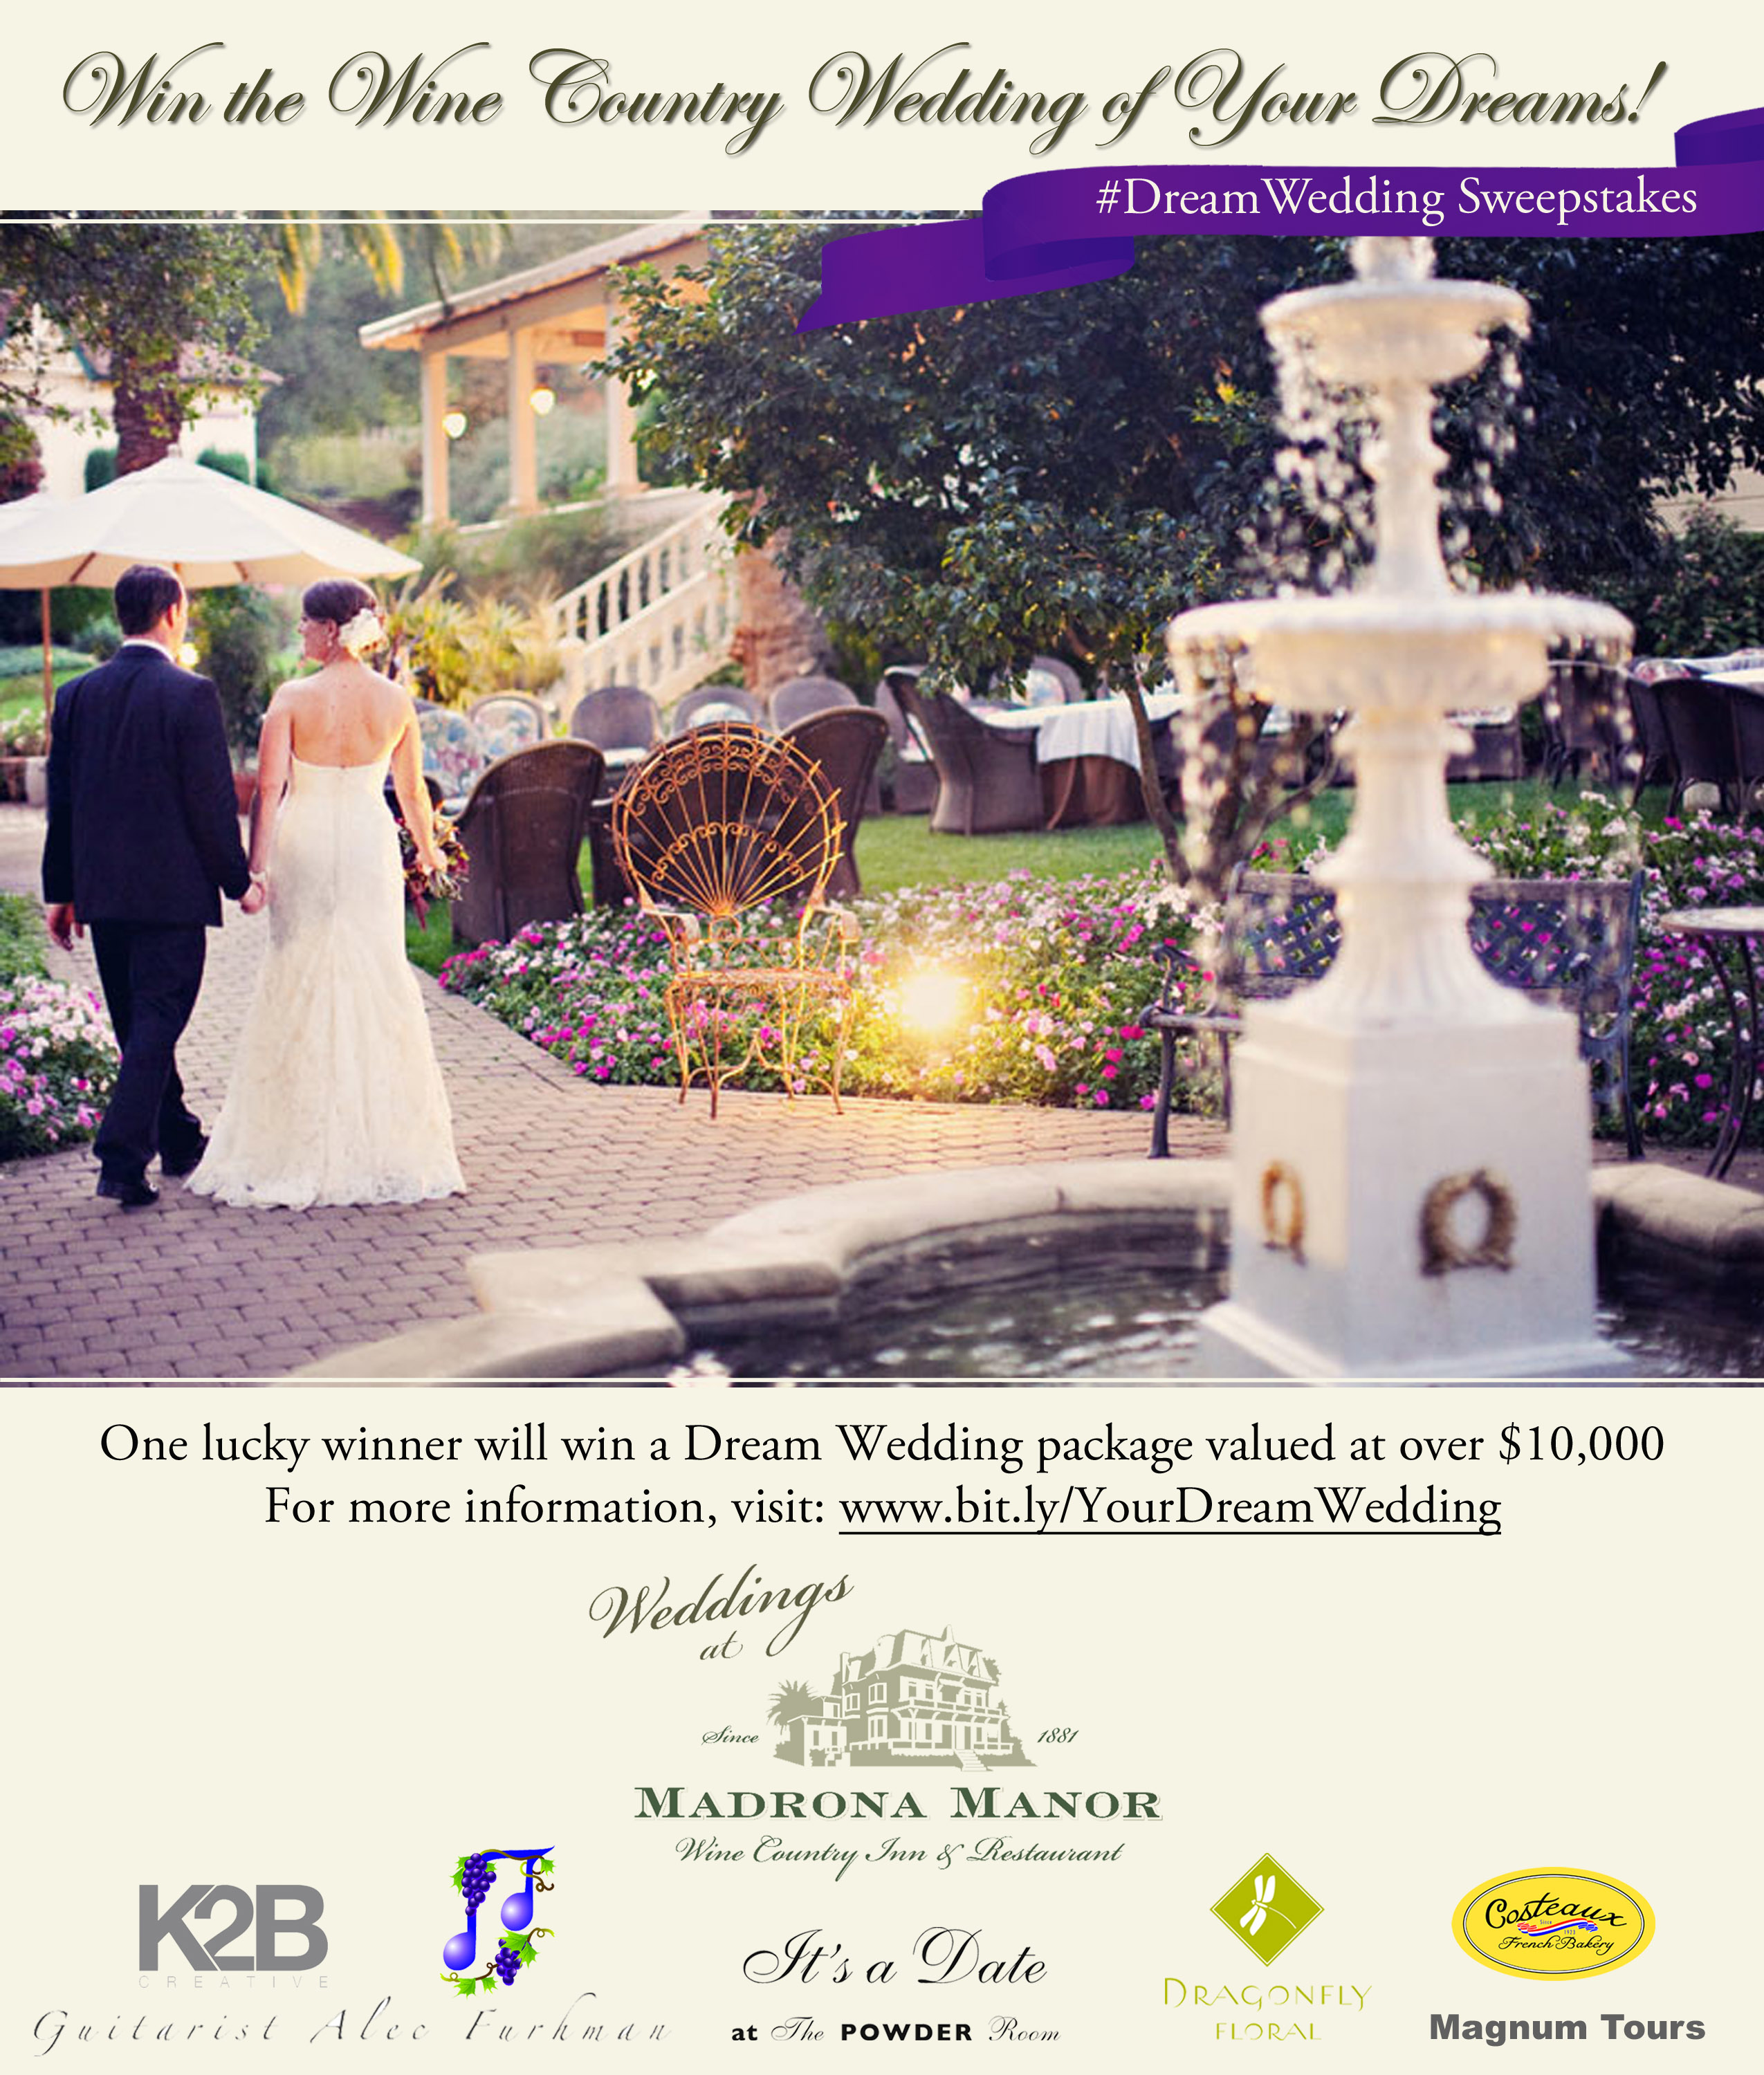 madrona manors dream wedding sweepstakes